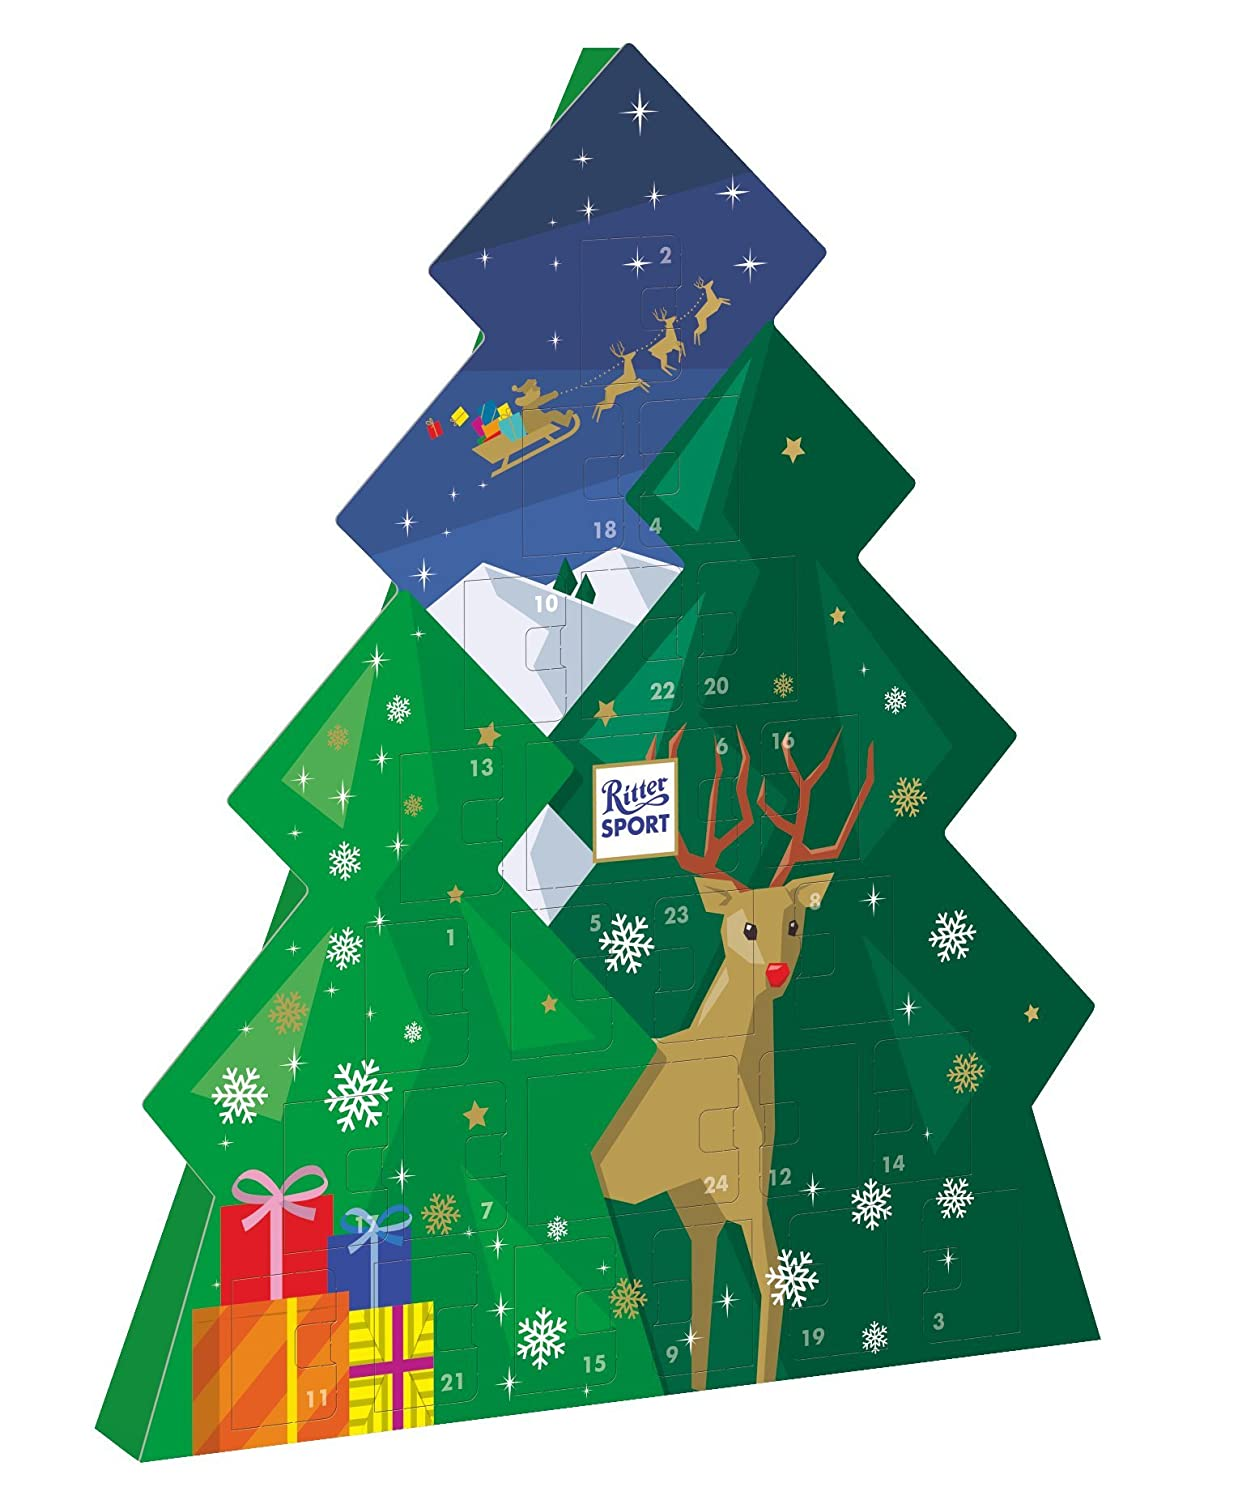 Amazon.com : Ritter Sport Advent Calendar Christmas Tree 208g ...